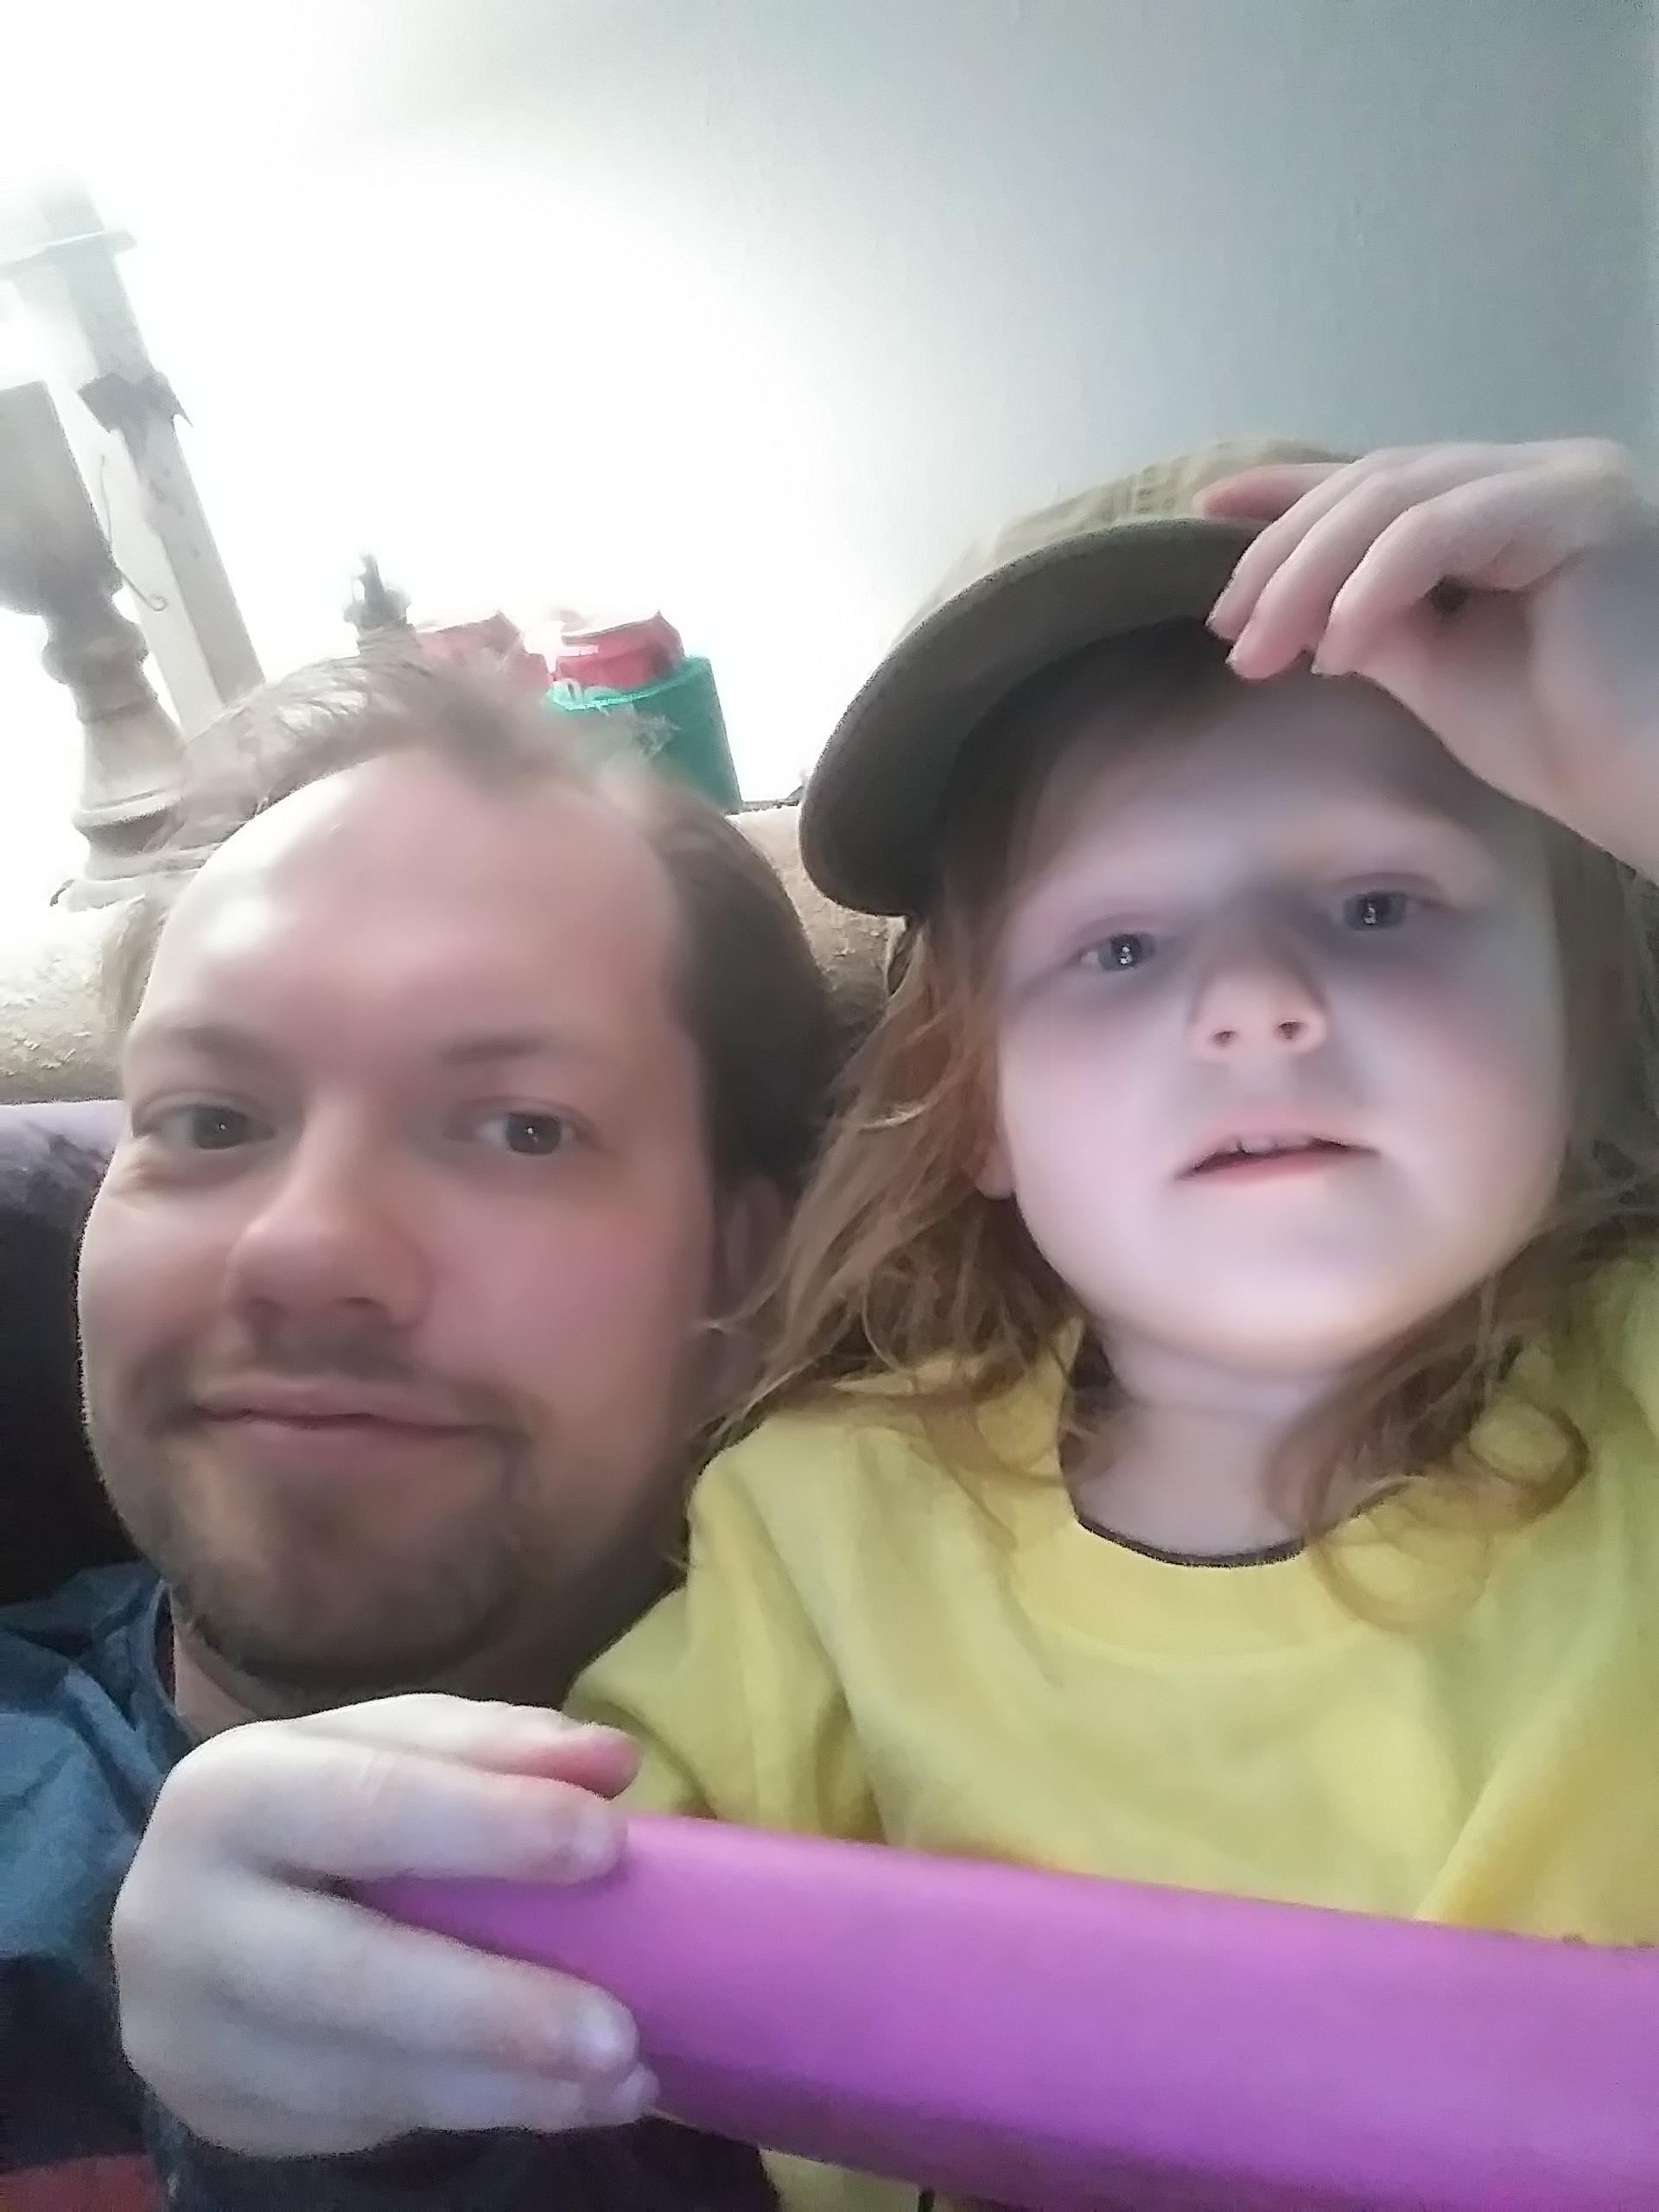 Dustin McMurry and Child